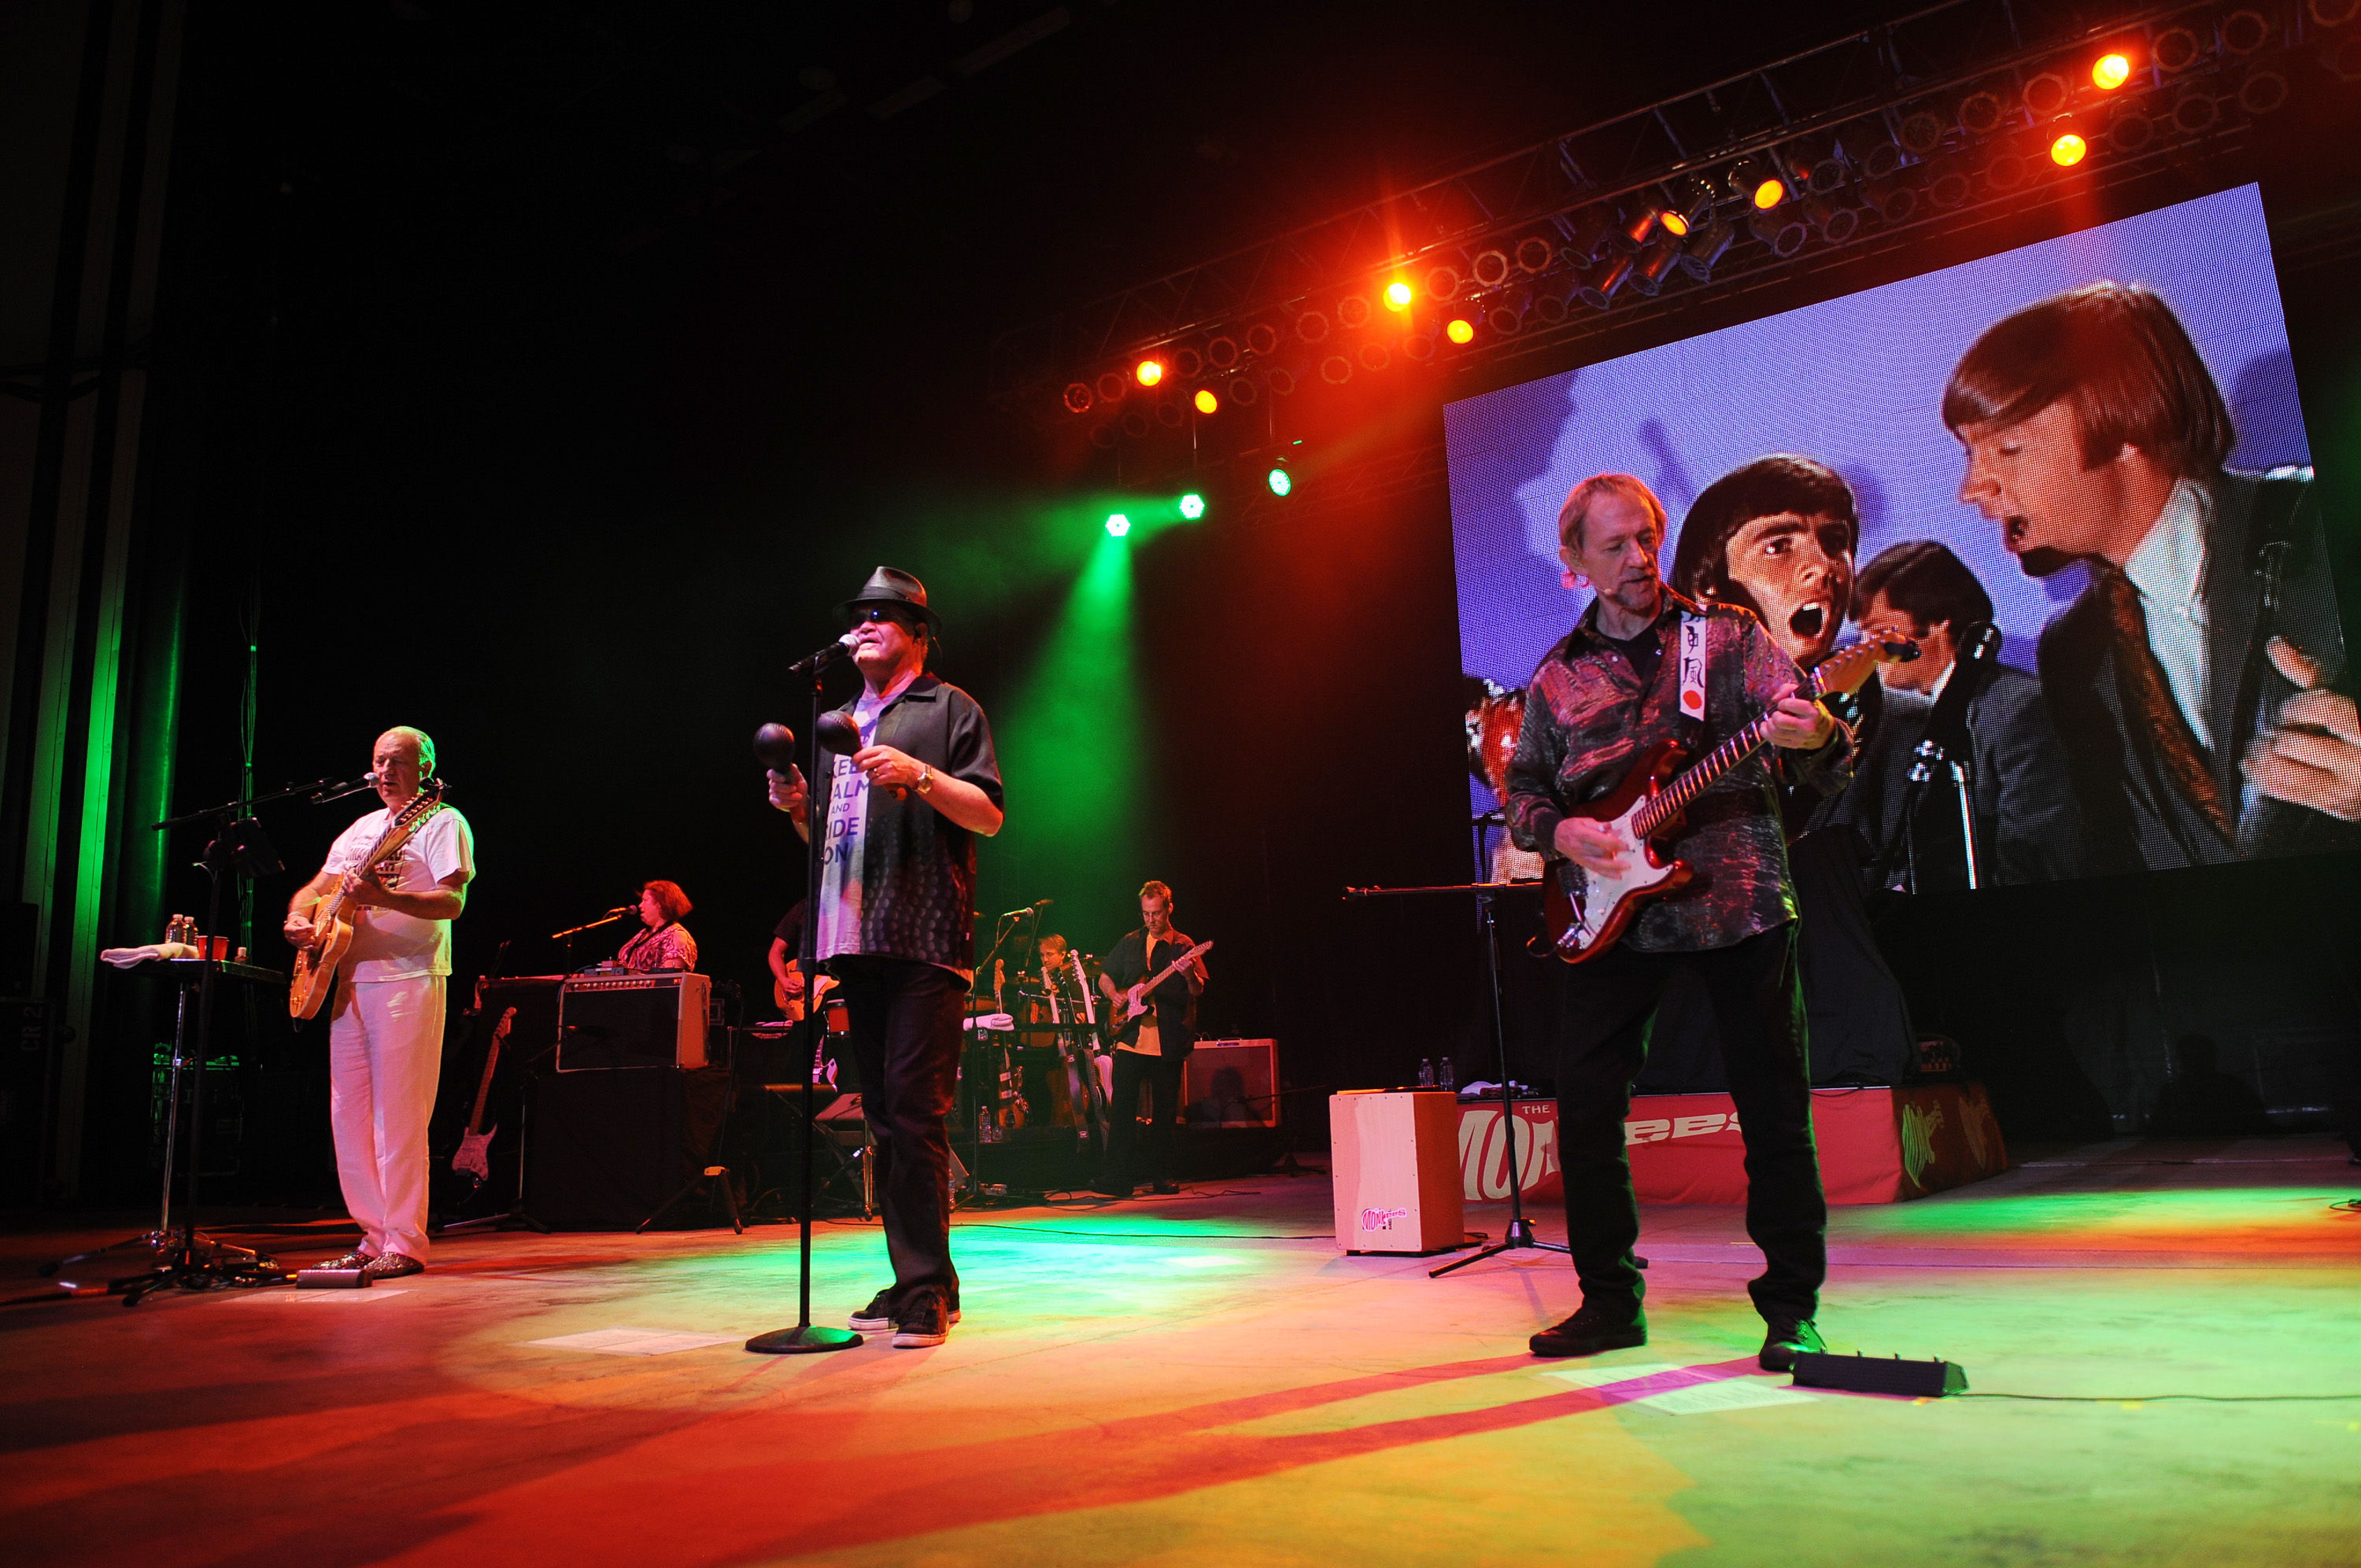 Michael Nesmith, Micky Dolenz and Peter Tork of The Monkees perform during the Mid Summers Night Tour at the Mizner Park Amphitheater, July 27, 2013 in Boca Raton, Fla.